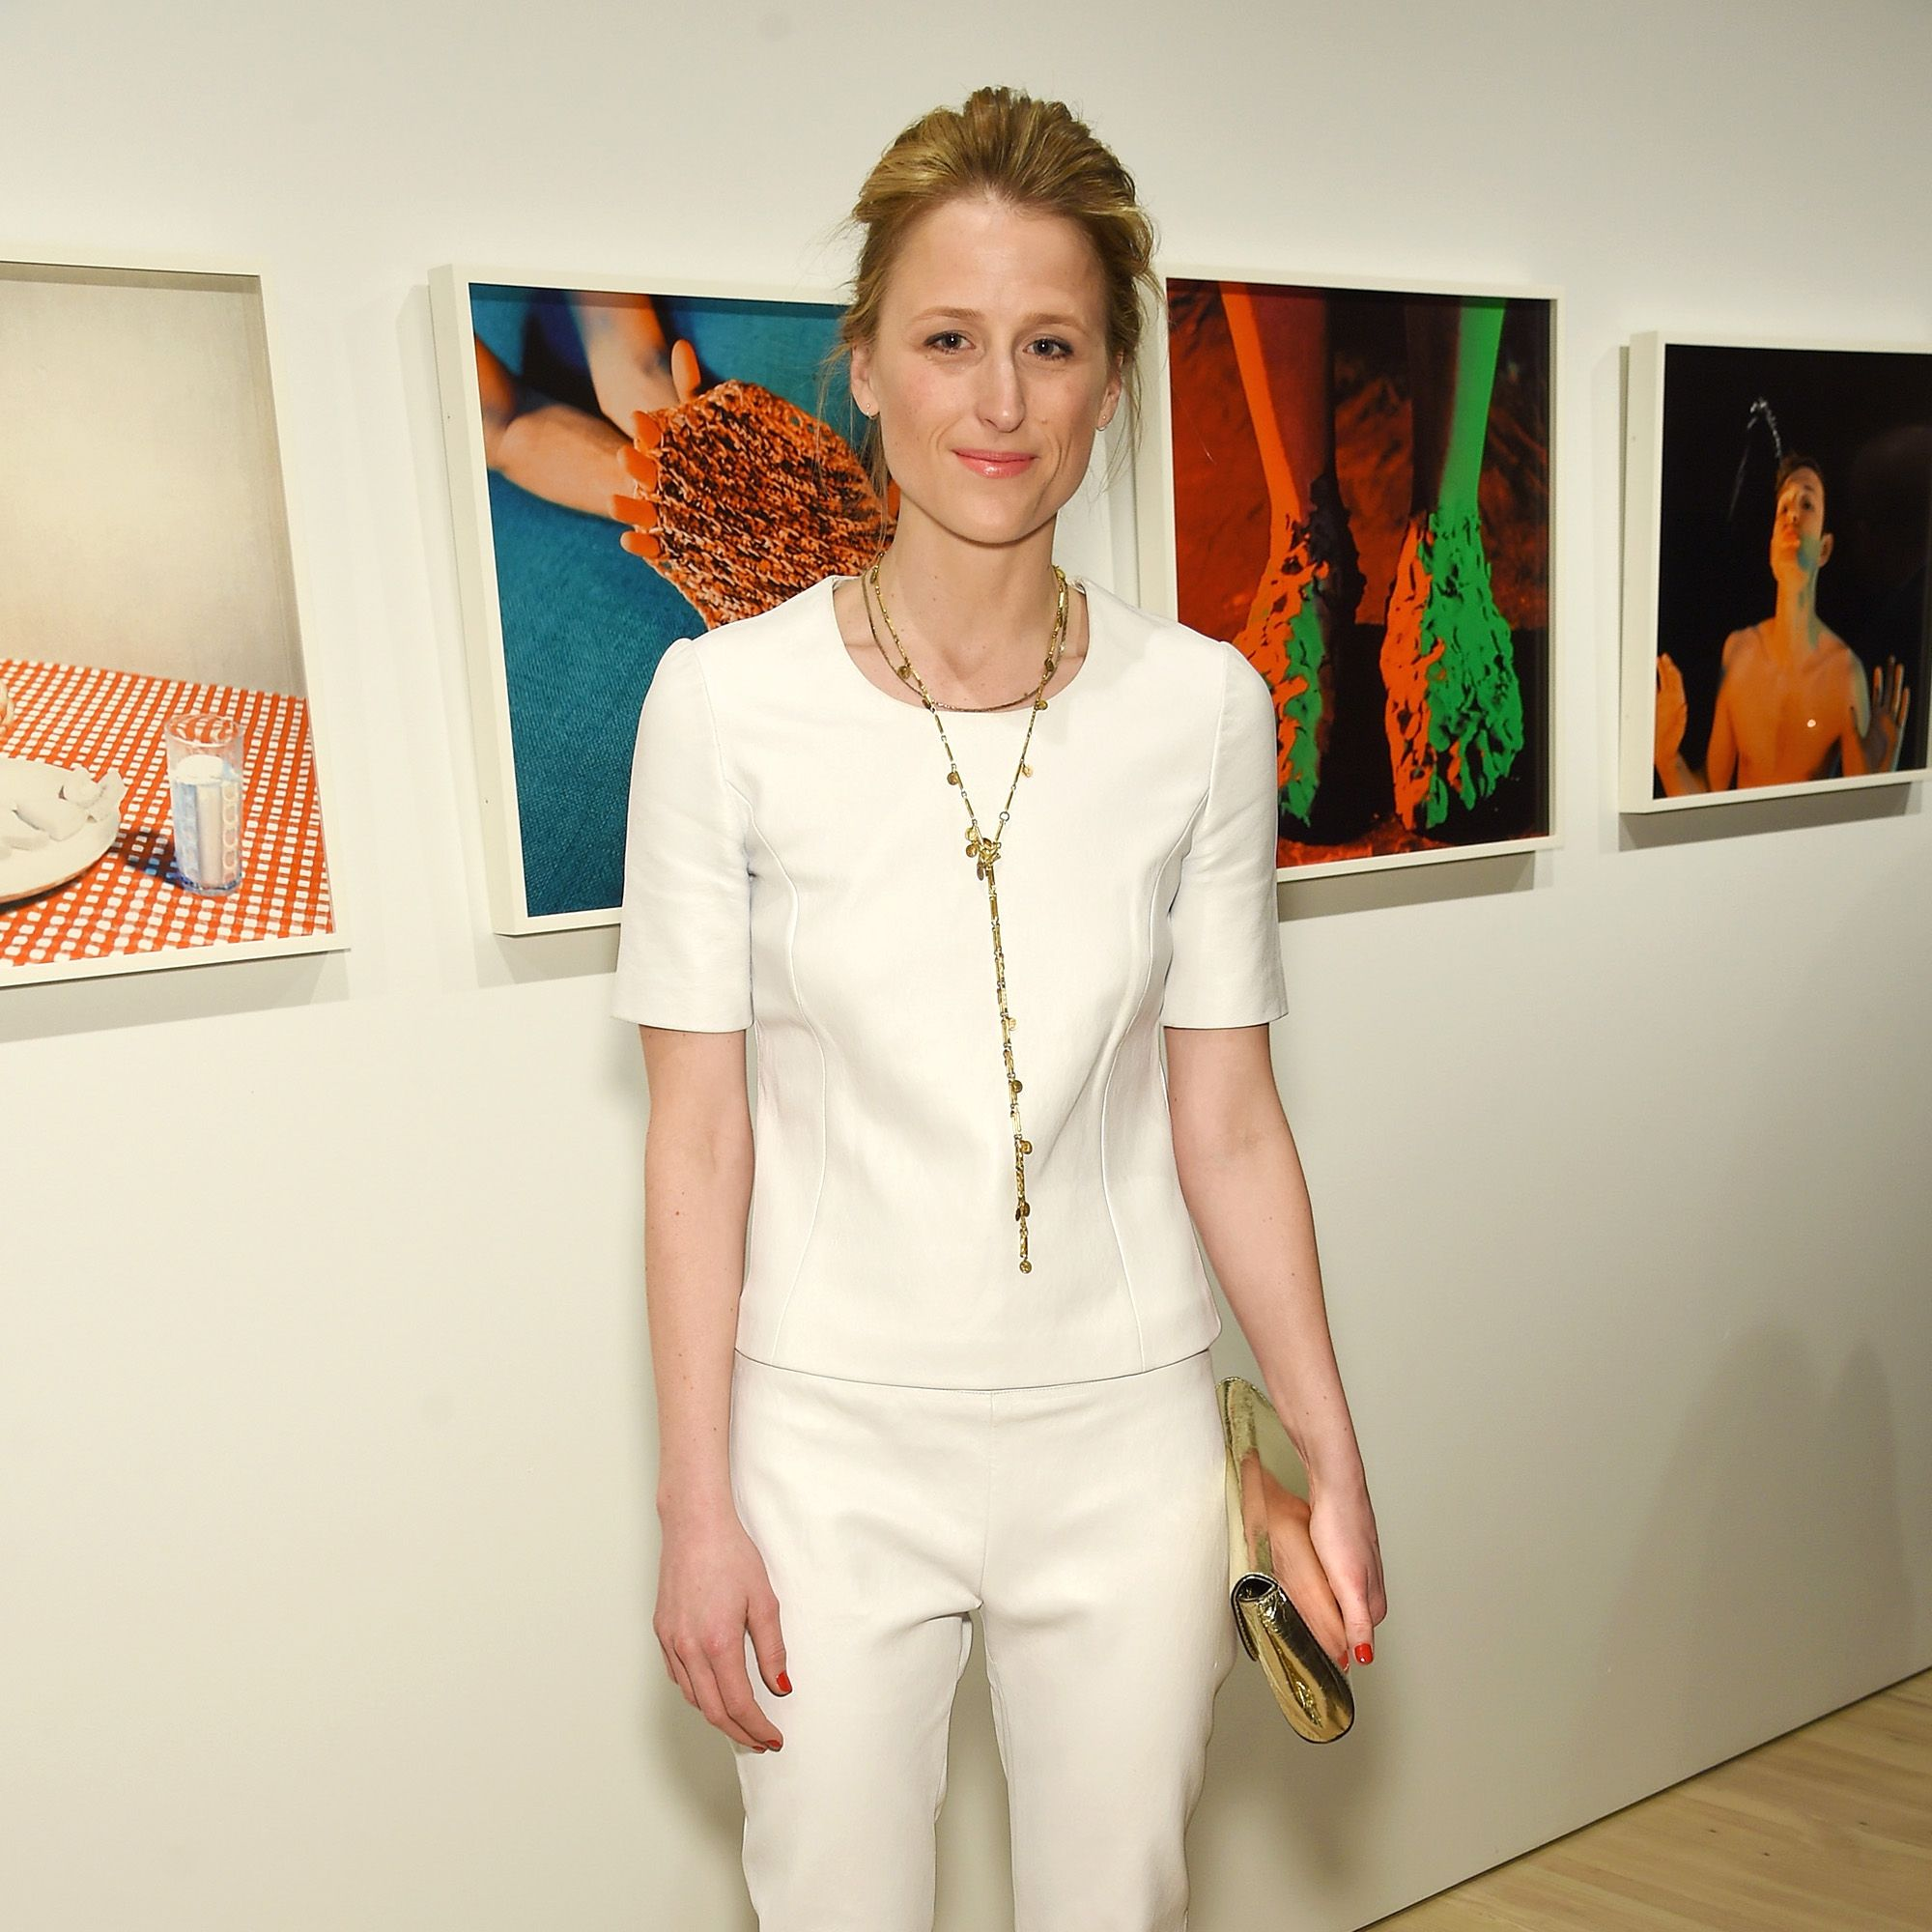 NEW YORK, NY - APRIL 02:  Actress Mamie Gummer attends Audi's Celebration of partnership with the Whitney Museum on April 2, 2015 in New York City.  (Photo by Dimitrios Kambouris/Getty Images for Audi)